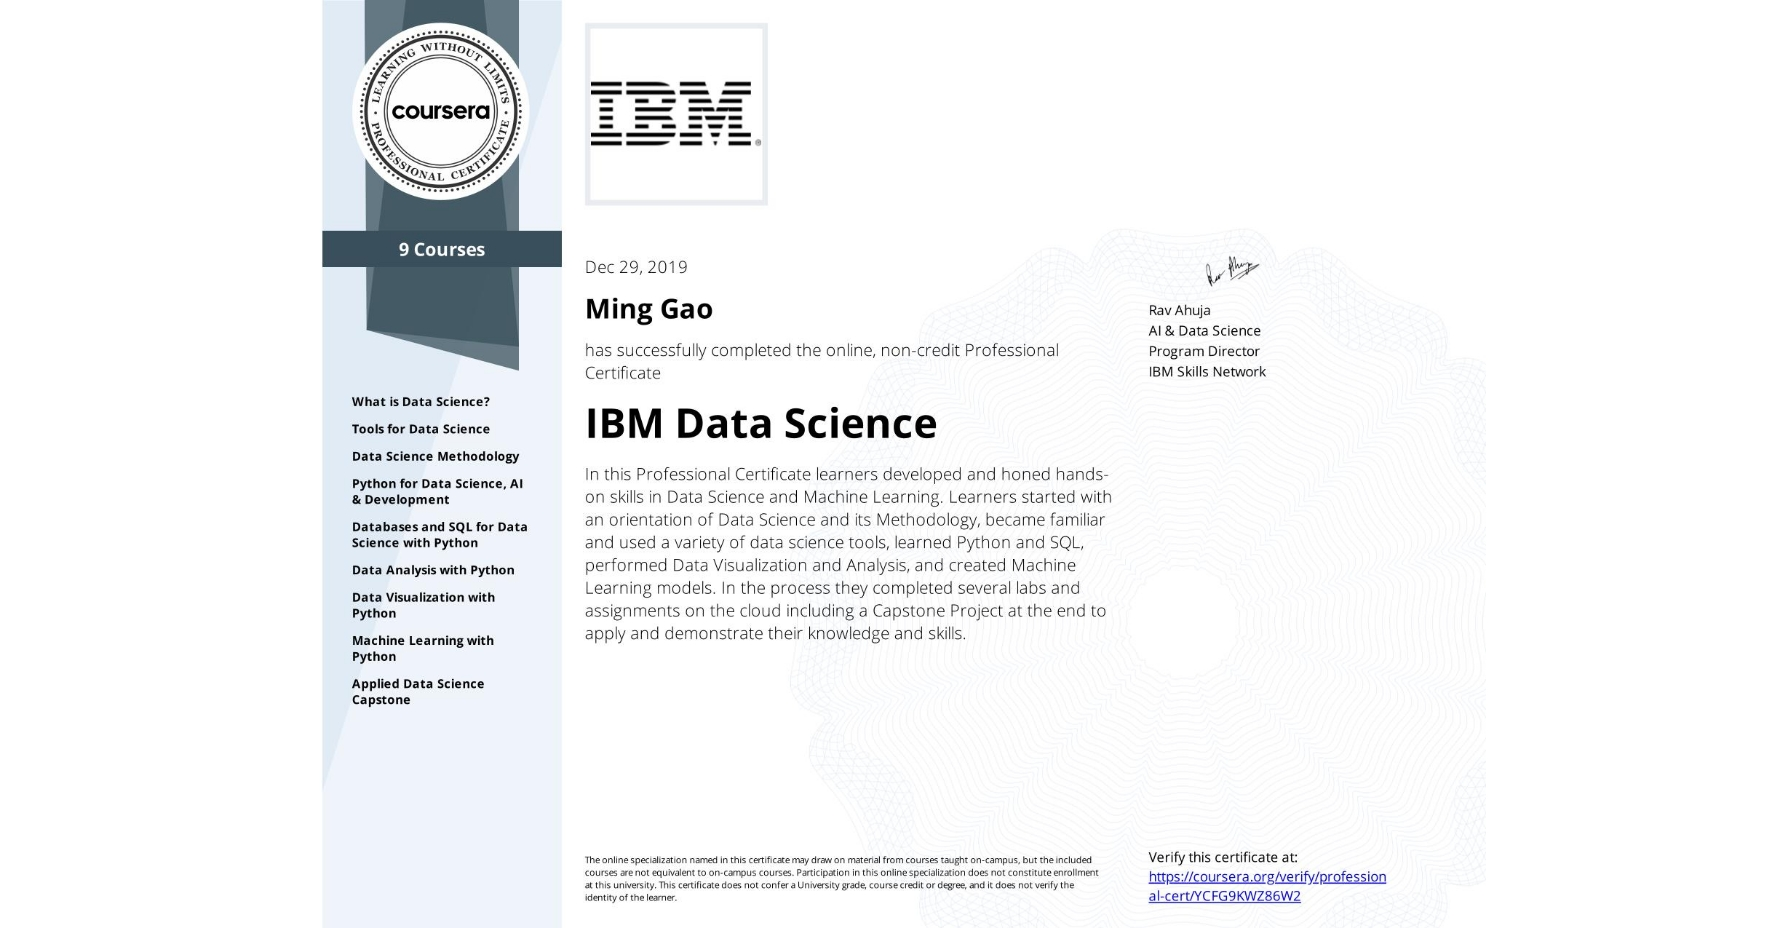 View certificate for Ming Gao, IBM Data Science, offered through Coursera. In this Professional Certificate learners developed and honed hands-on skills in Data Science and Machine Learning. Learners started with an orientation of Data Science and its Methodology, became familiar and used a variety of data science tools, learned Python and SQL, performed Data Visualization and Analysis, and created Machine Learning models.  In the process they completed several labs and assignments on the cloud including a Capstone Project at the end to apply and demonstrate their knowledge and skills.